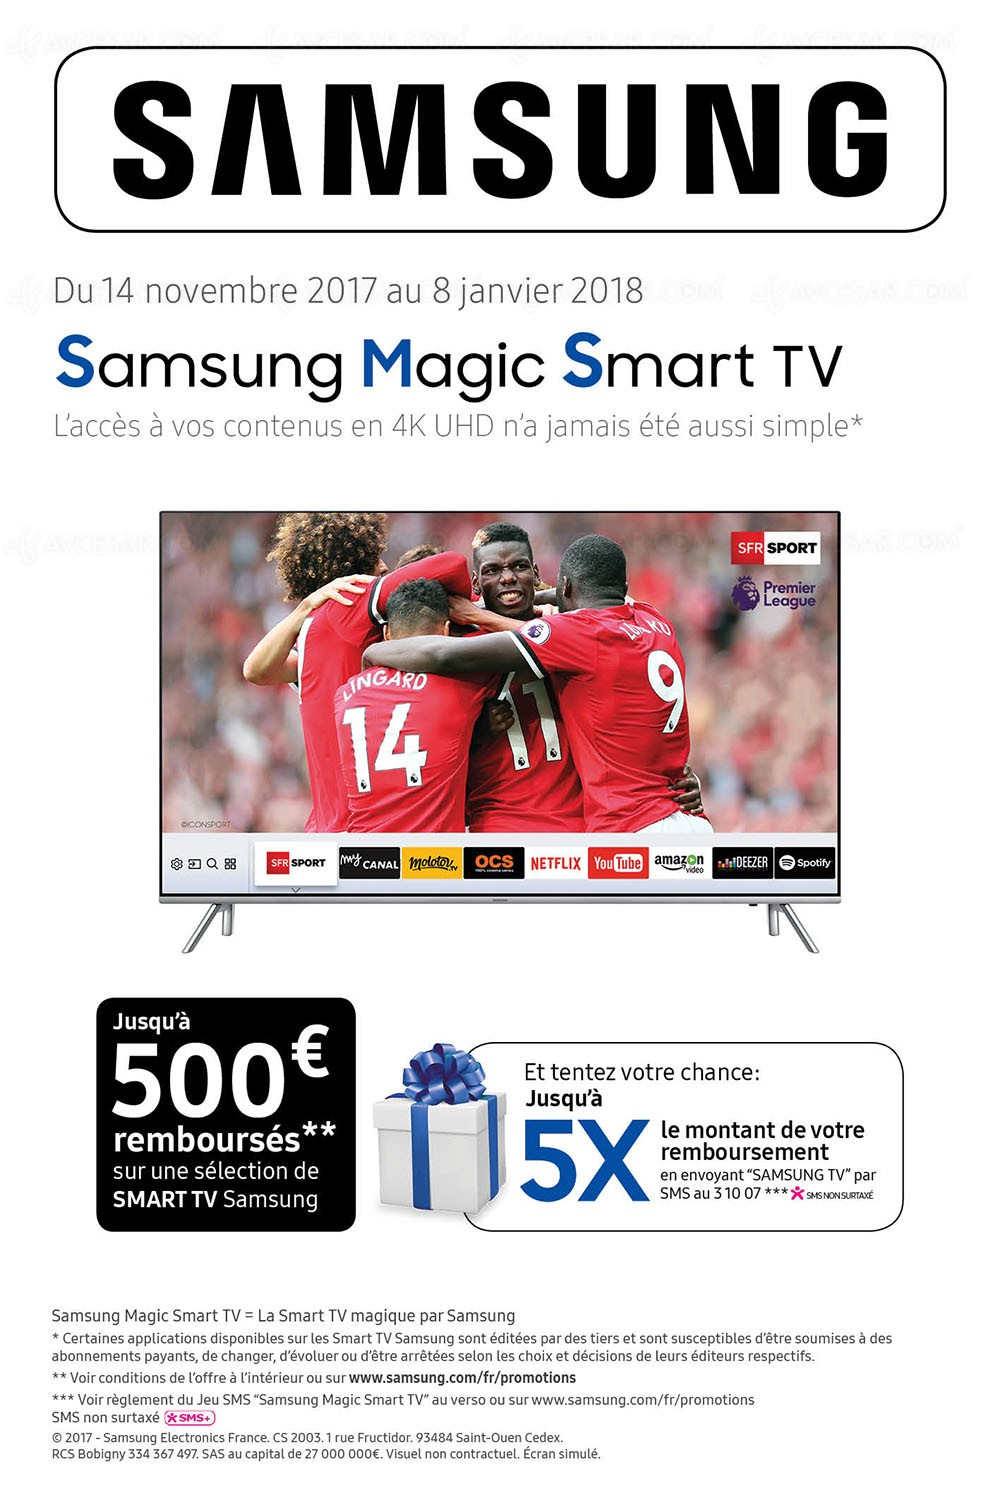 offre de remboursement samsung magic smart tv jusqu 39 500 et tentez de multiplier jusqu 39 5x. Black Bedroom Furniture Sets. Home Design Ideas